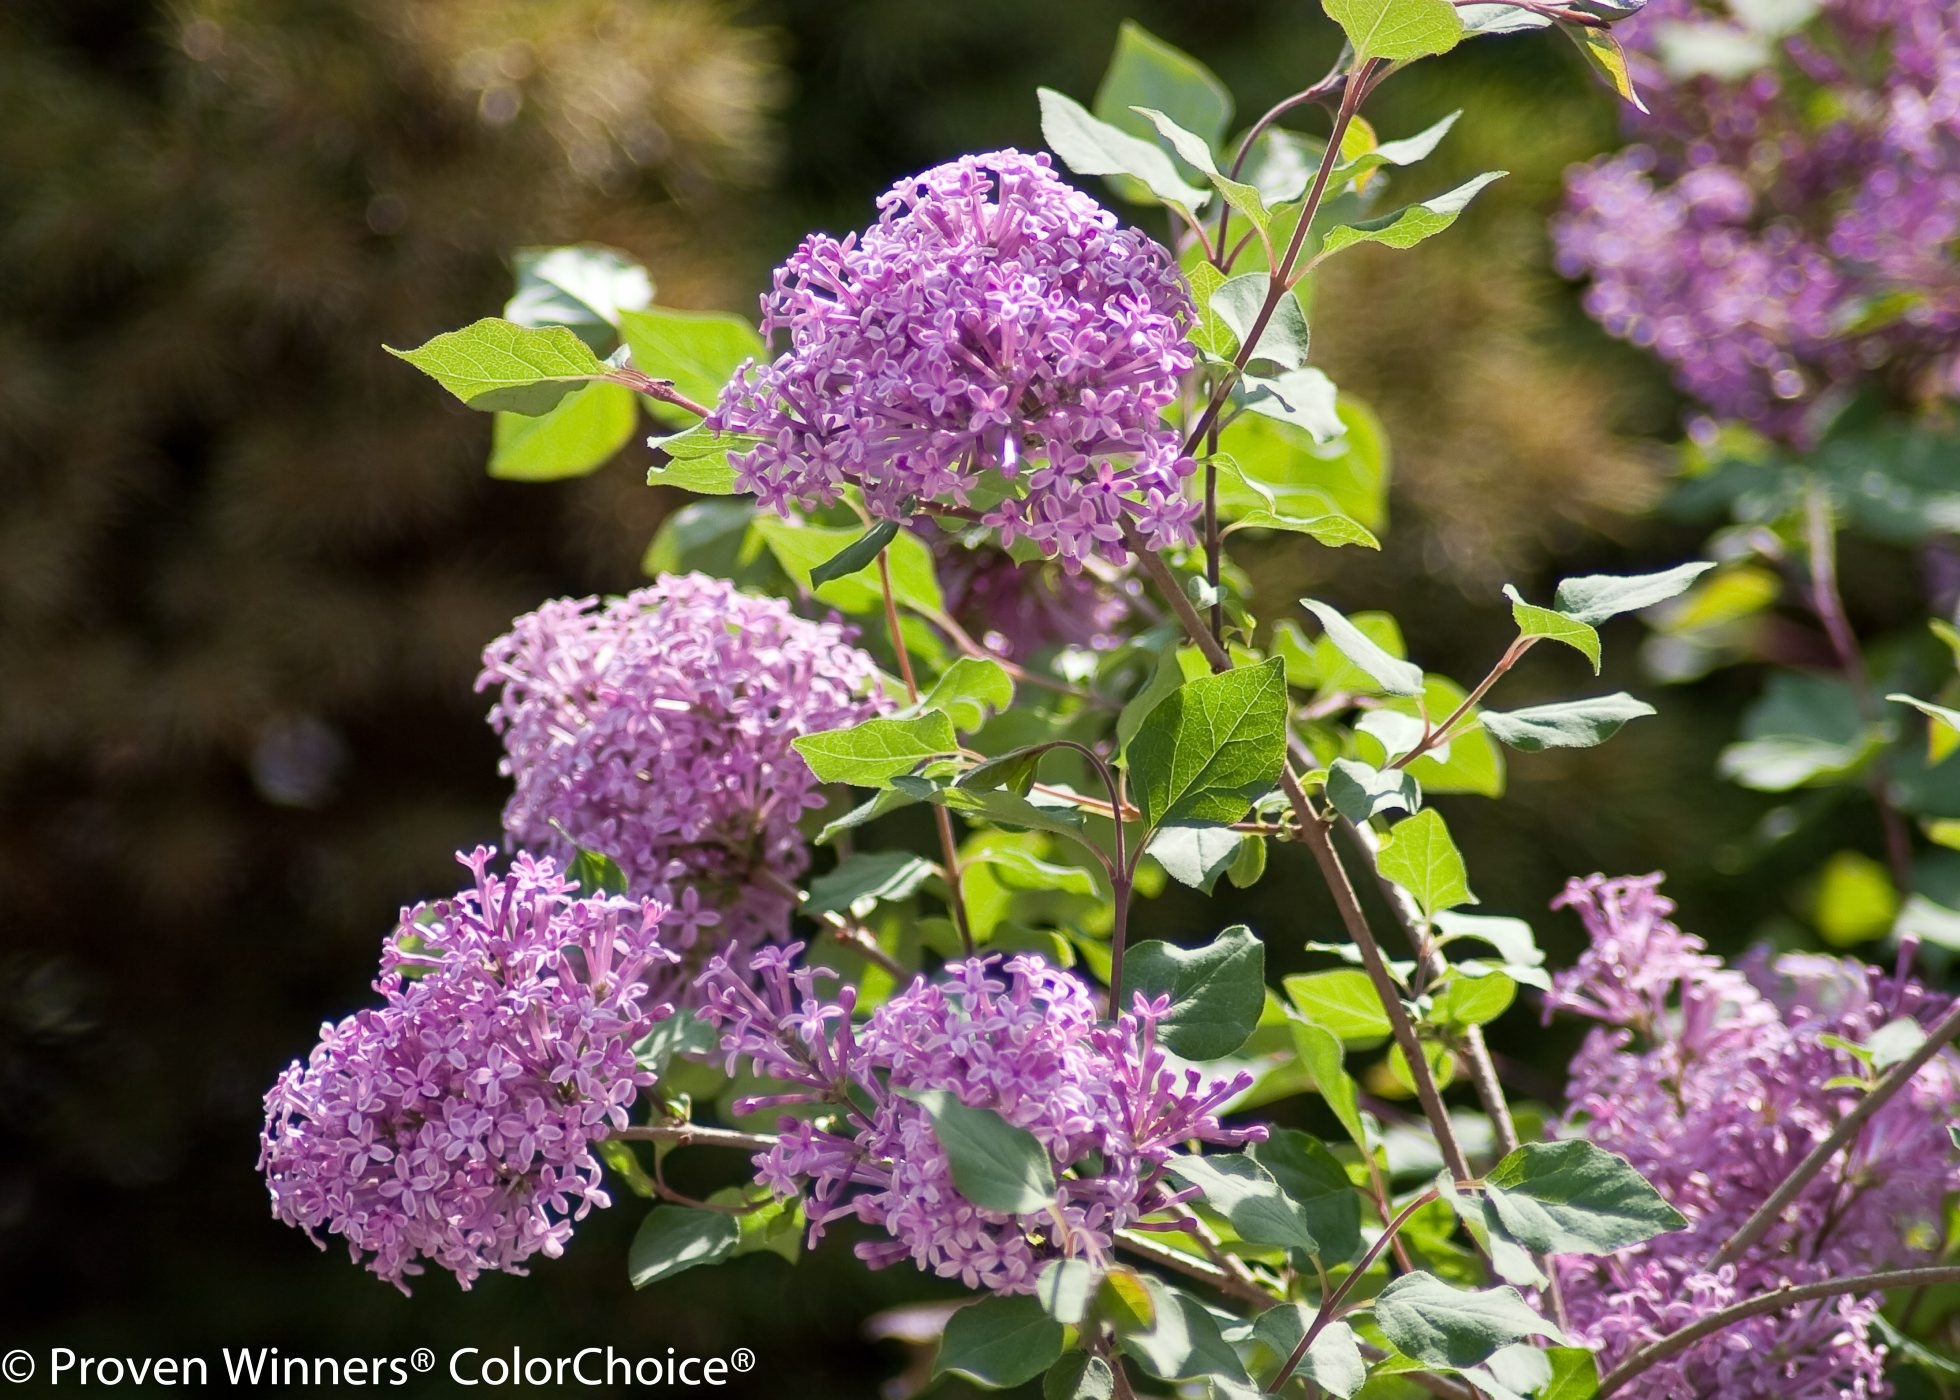 Recent shrub cultivars such as the lilac 'Bloomerang' were hybridized relying on the fact that spring flowering shrubs can bloom again if they have a long enough season, and this year, they probably did.